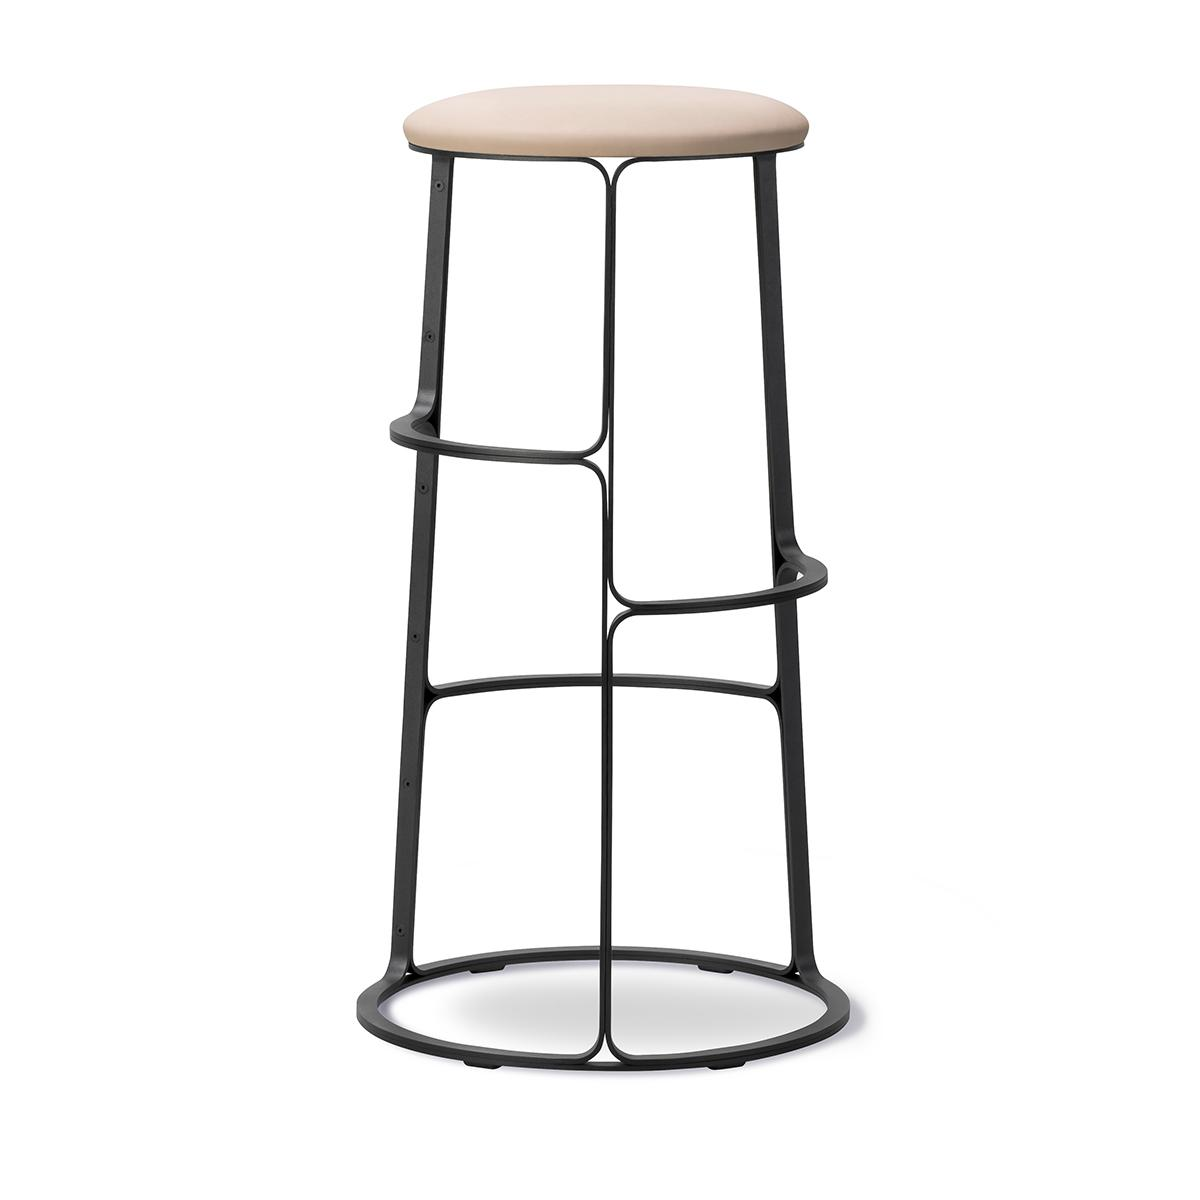 Barbry-Stool-Black-Cream-Leather-1200